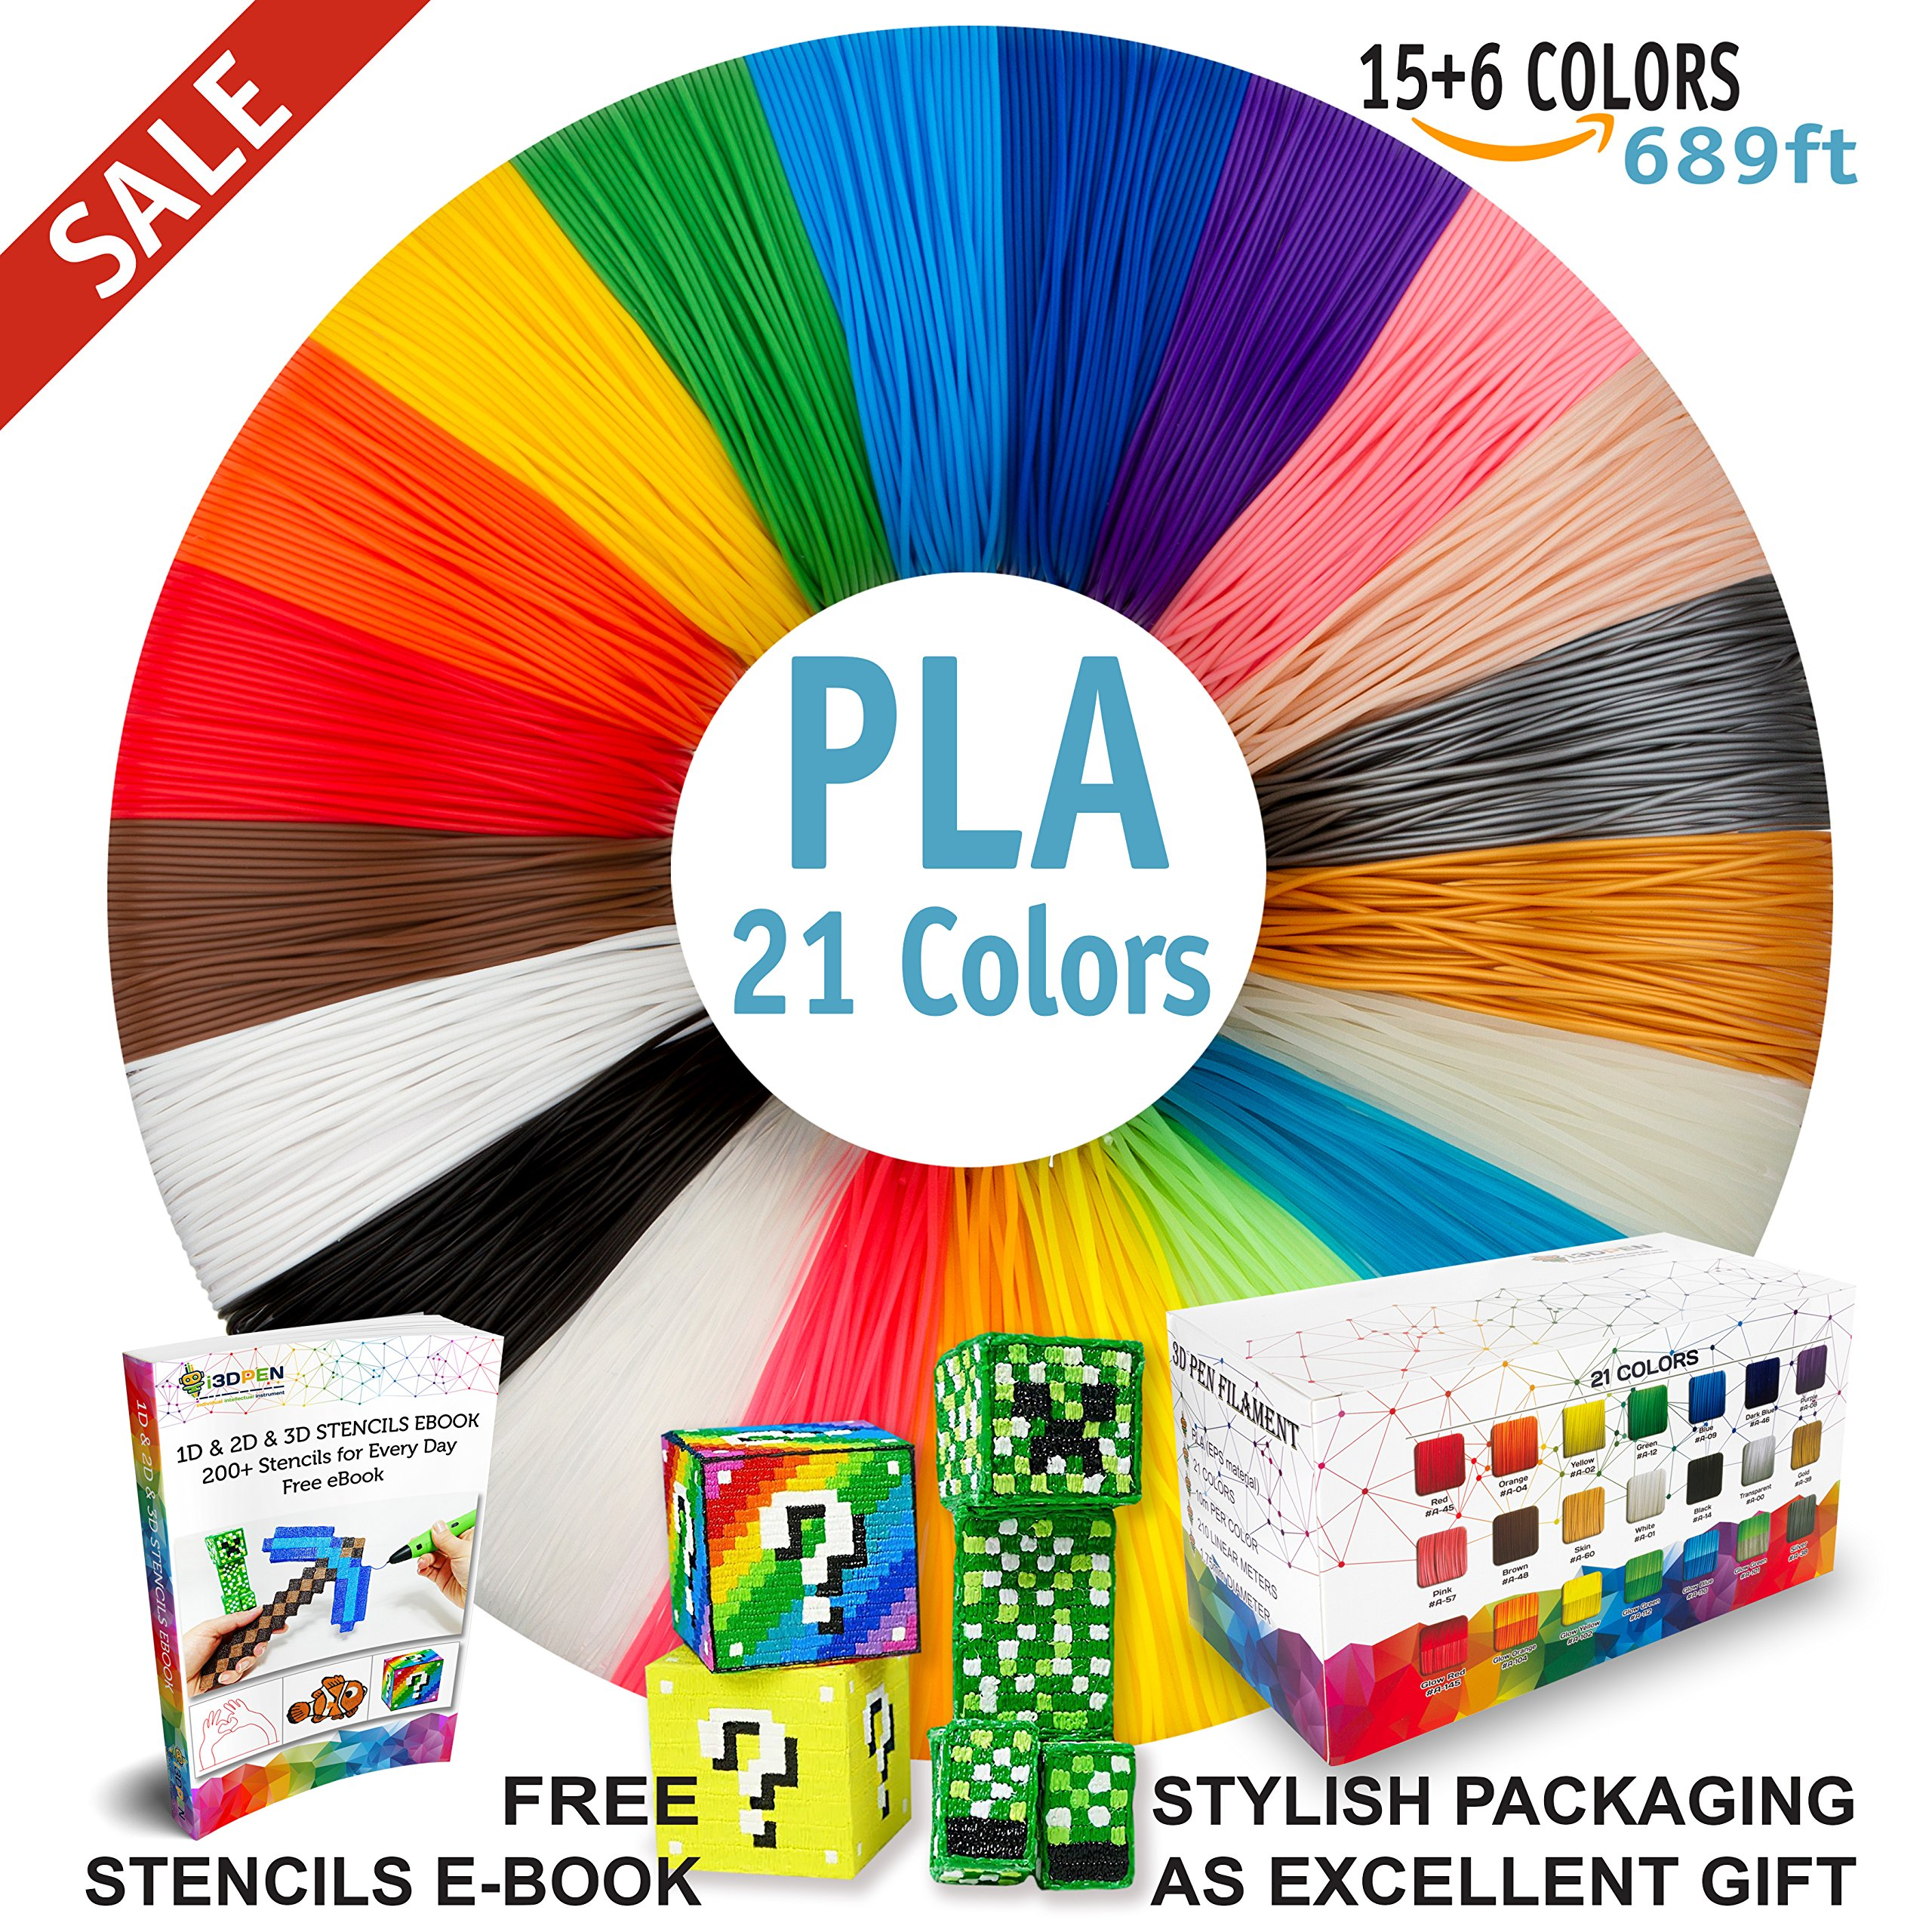 3D Pen Filament Refills - Premium Set of 21 Colors 689ft Bonus 200 Stencils EBook including 6 Glow in the Dark - Best 1.75mm PLA Filament Pack for 3D Pens